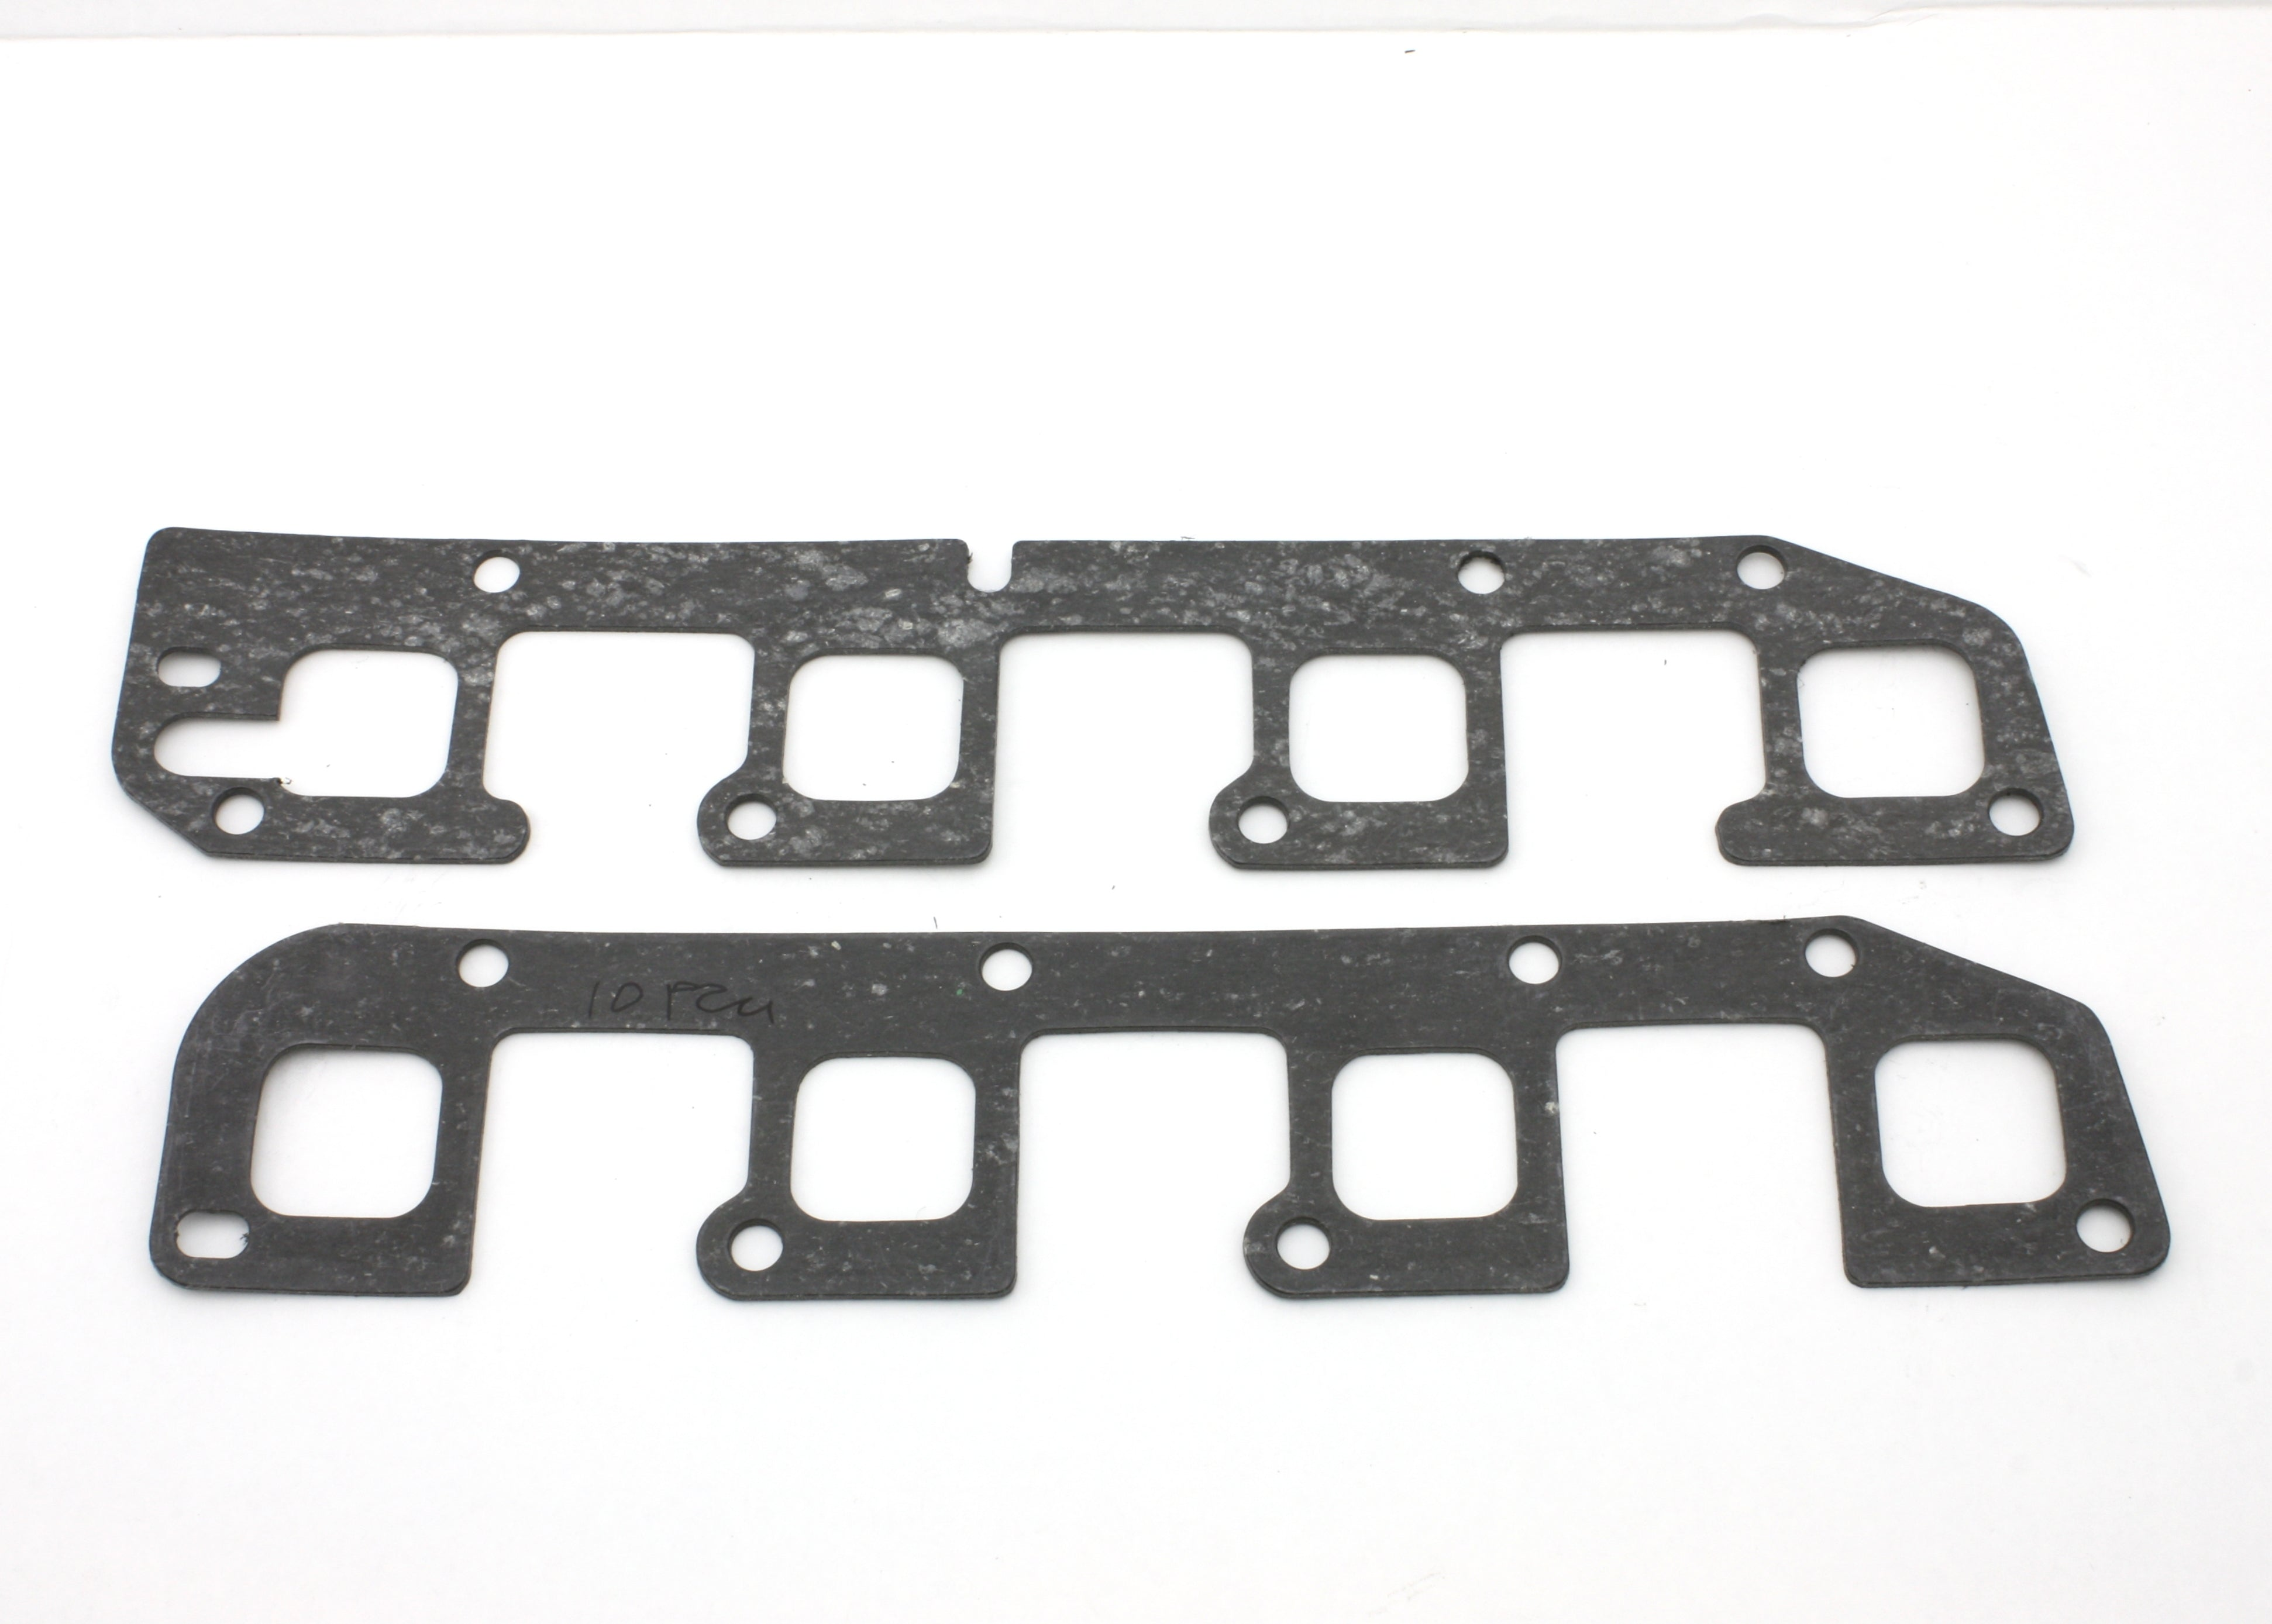 Doug's Headers HG9693 Chrysler 5.7L Hemi  Rectangular Header Flange Gaskets